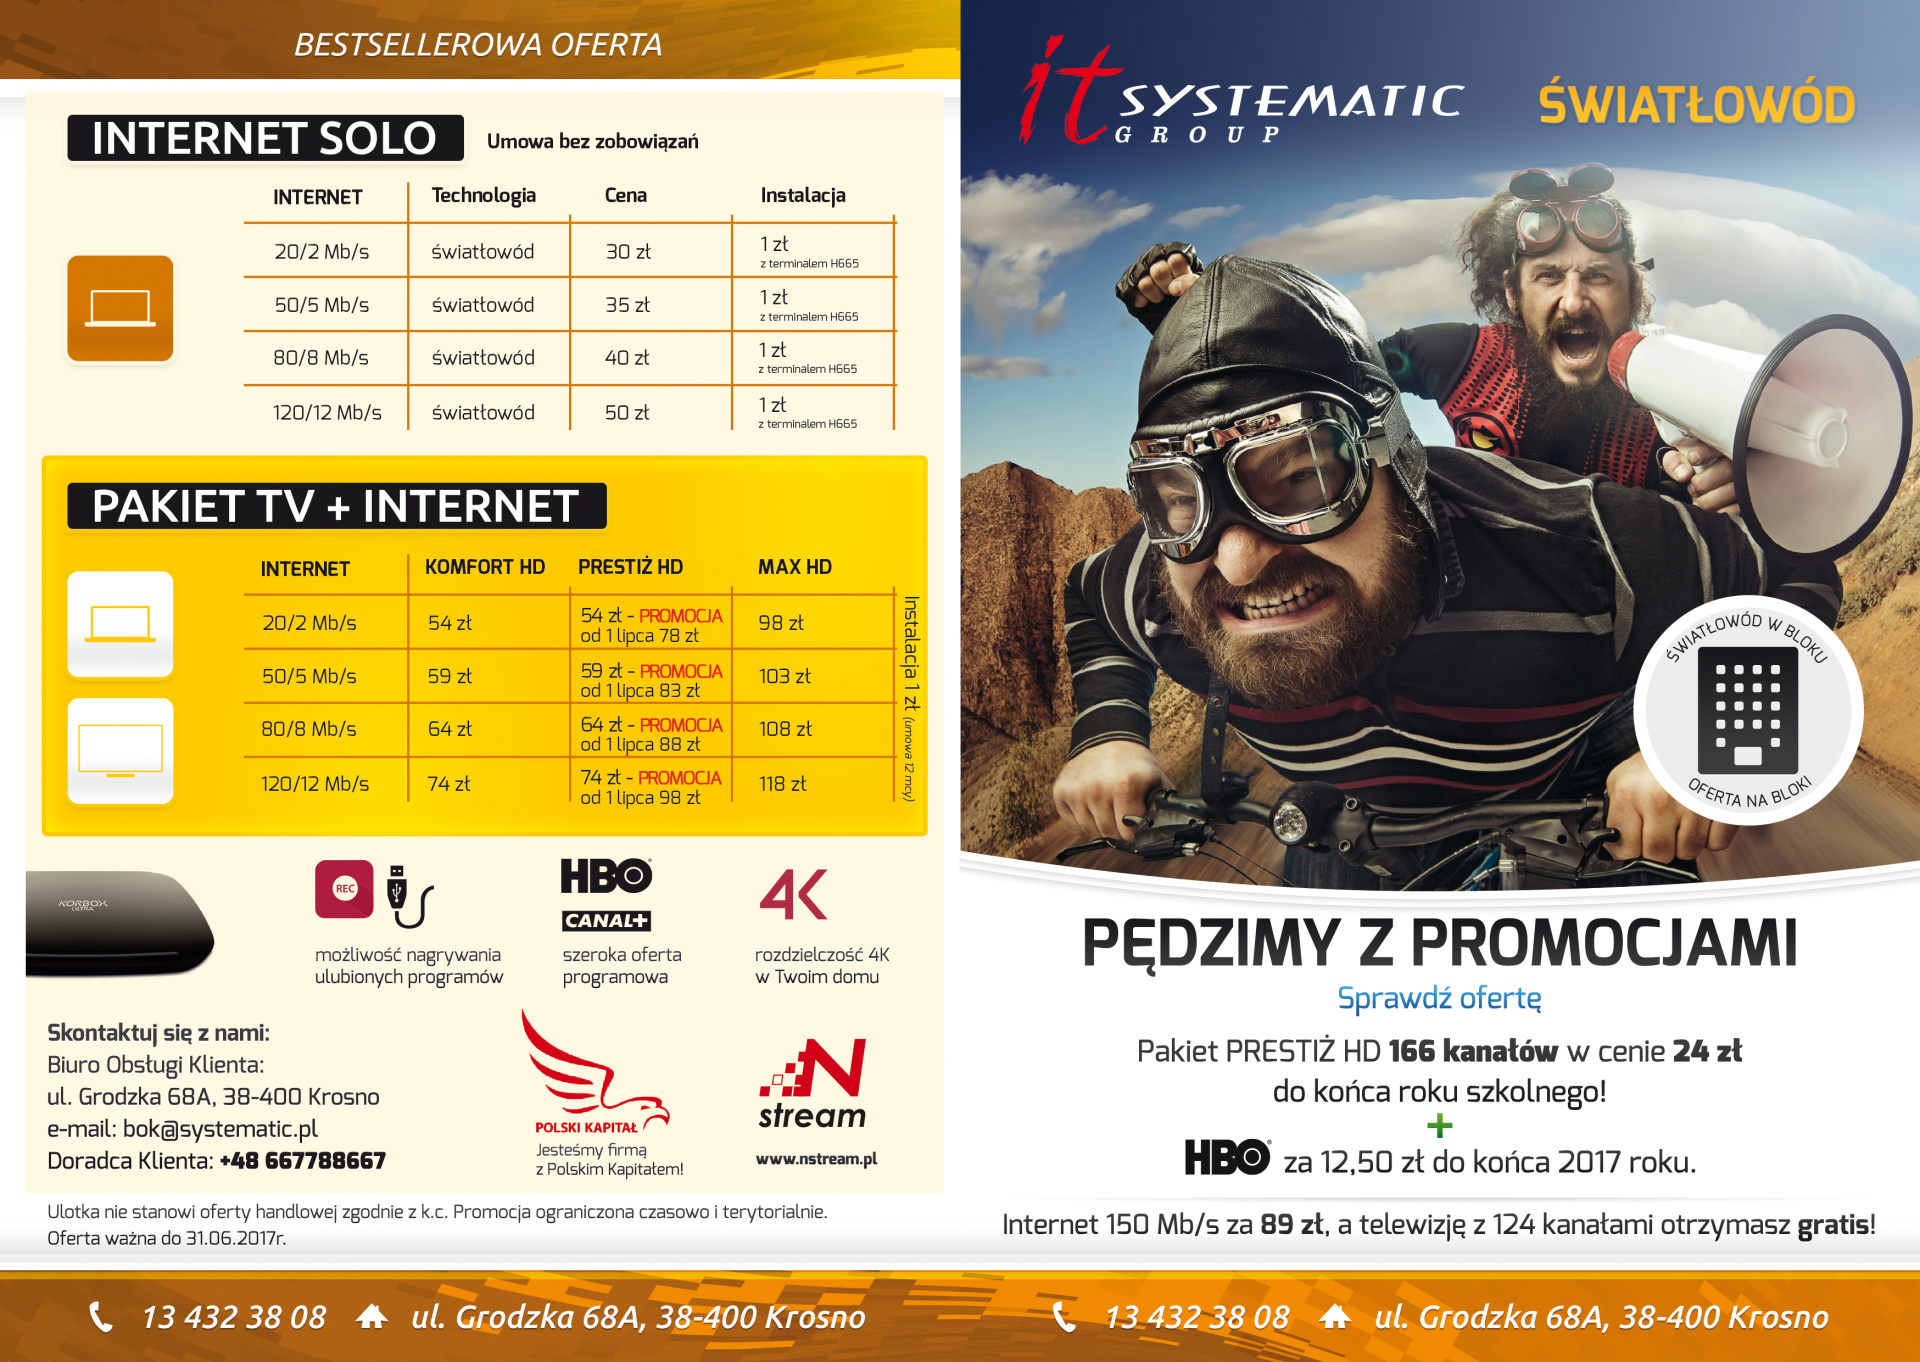 IT Systematic Group. nStream. Prezentacja ulotek składanych A4 do A5. Pędzimy z promocjami. Grafika: VORENUS.pl. Strony zewnętrzne. Żółto biała ulotka składana.